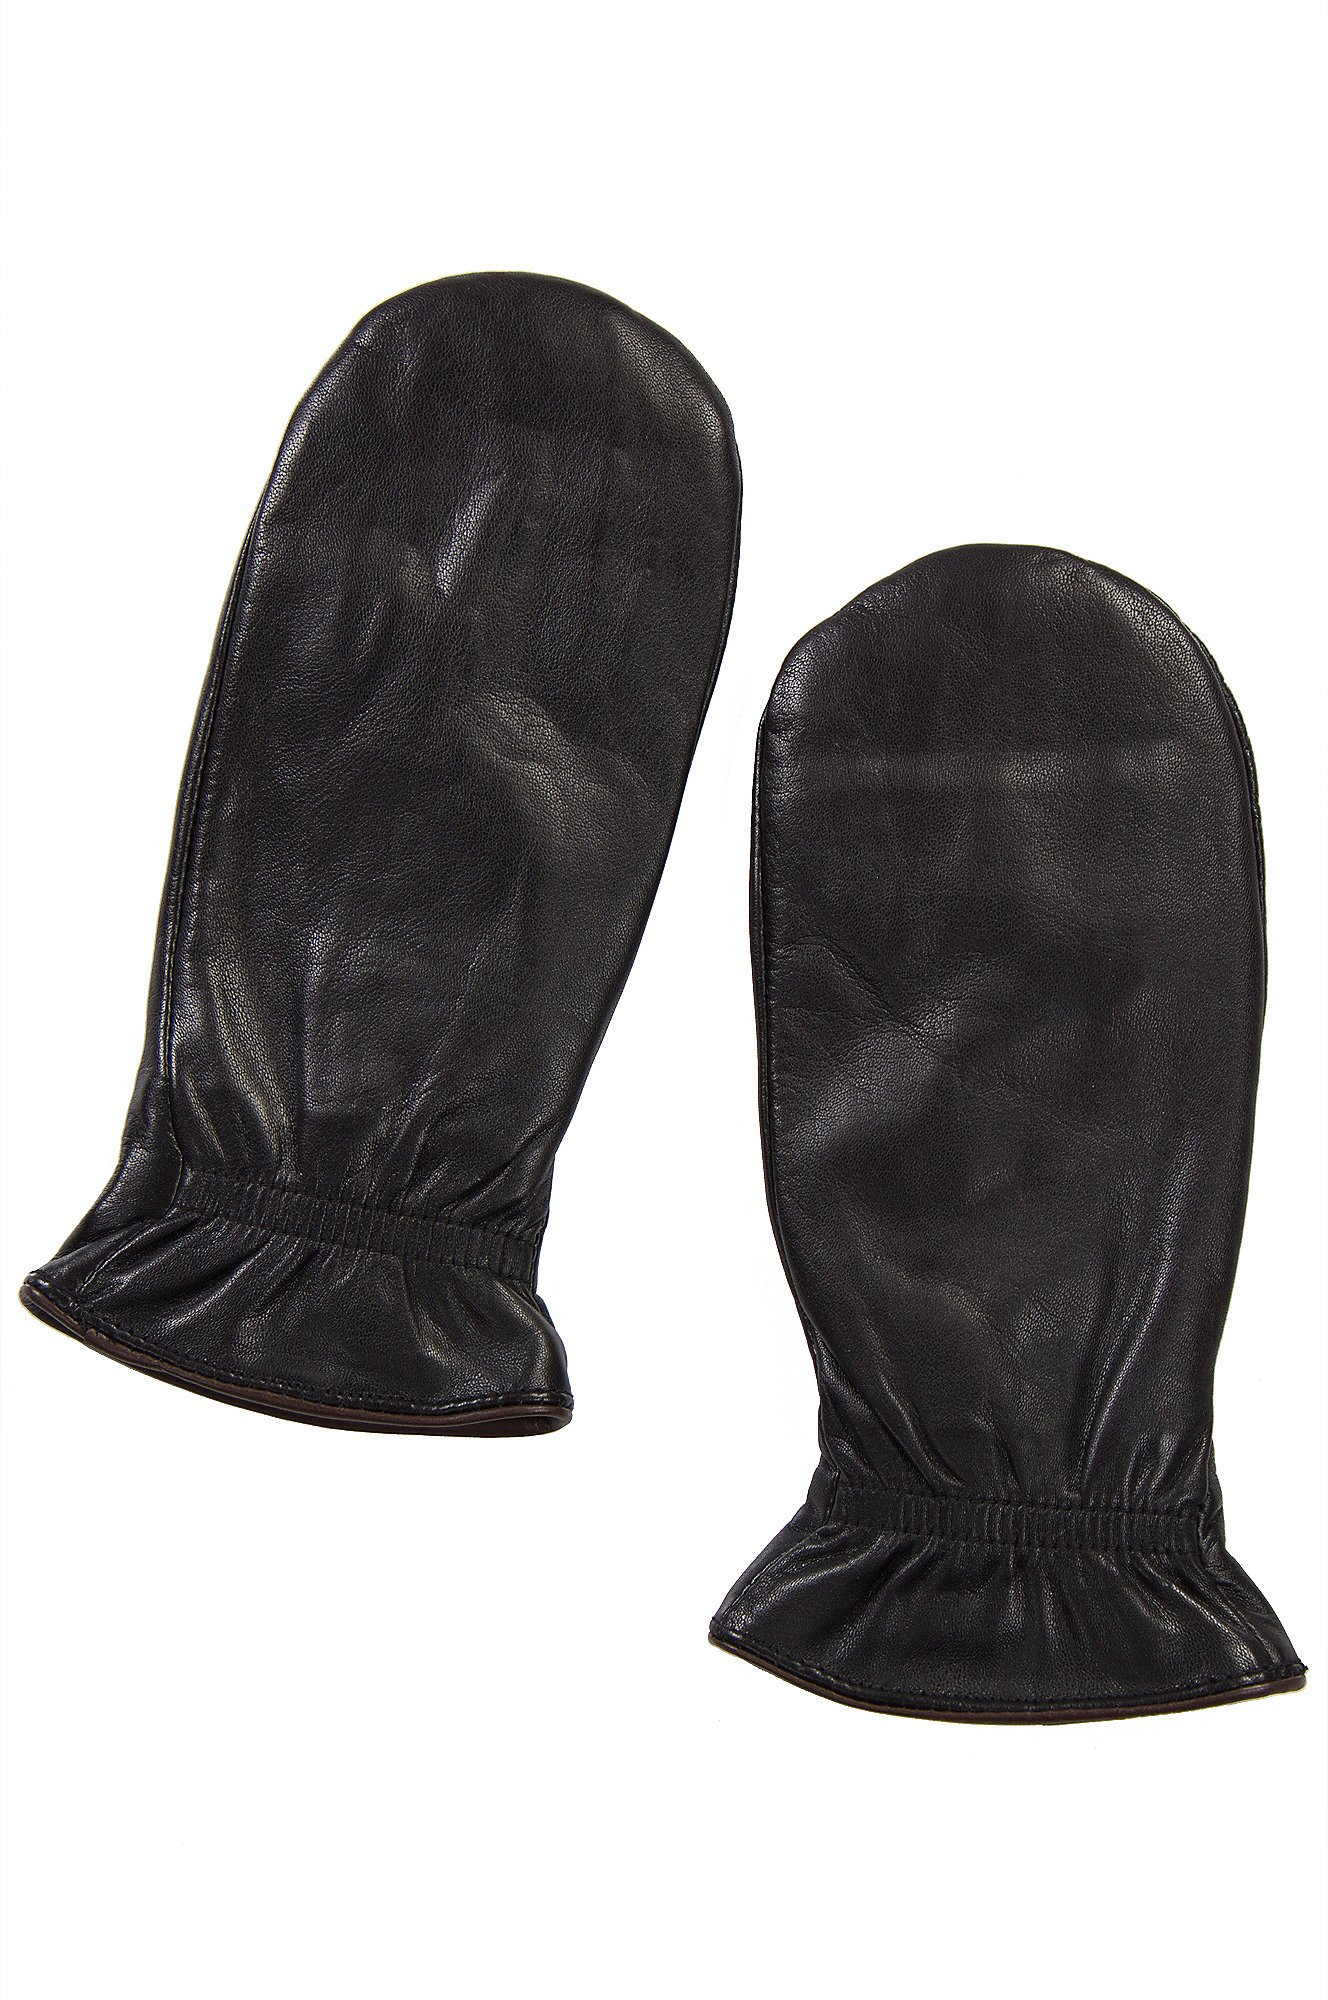 Women's Snowdrop Finger-Lined Lambskin Leather Mittens by Overland Sheepskin Co